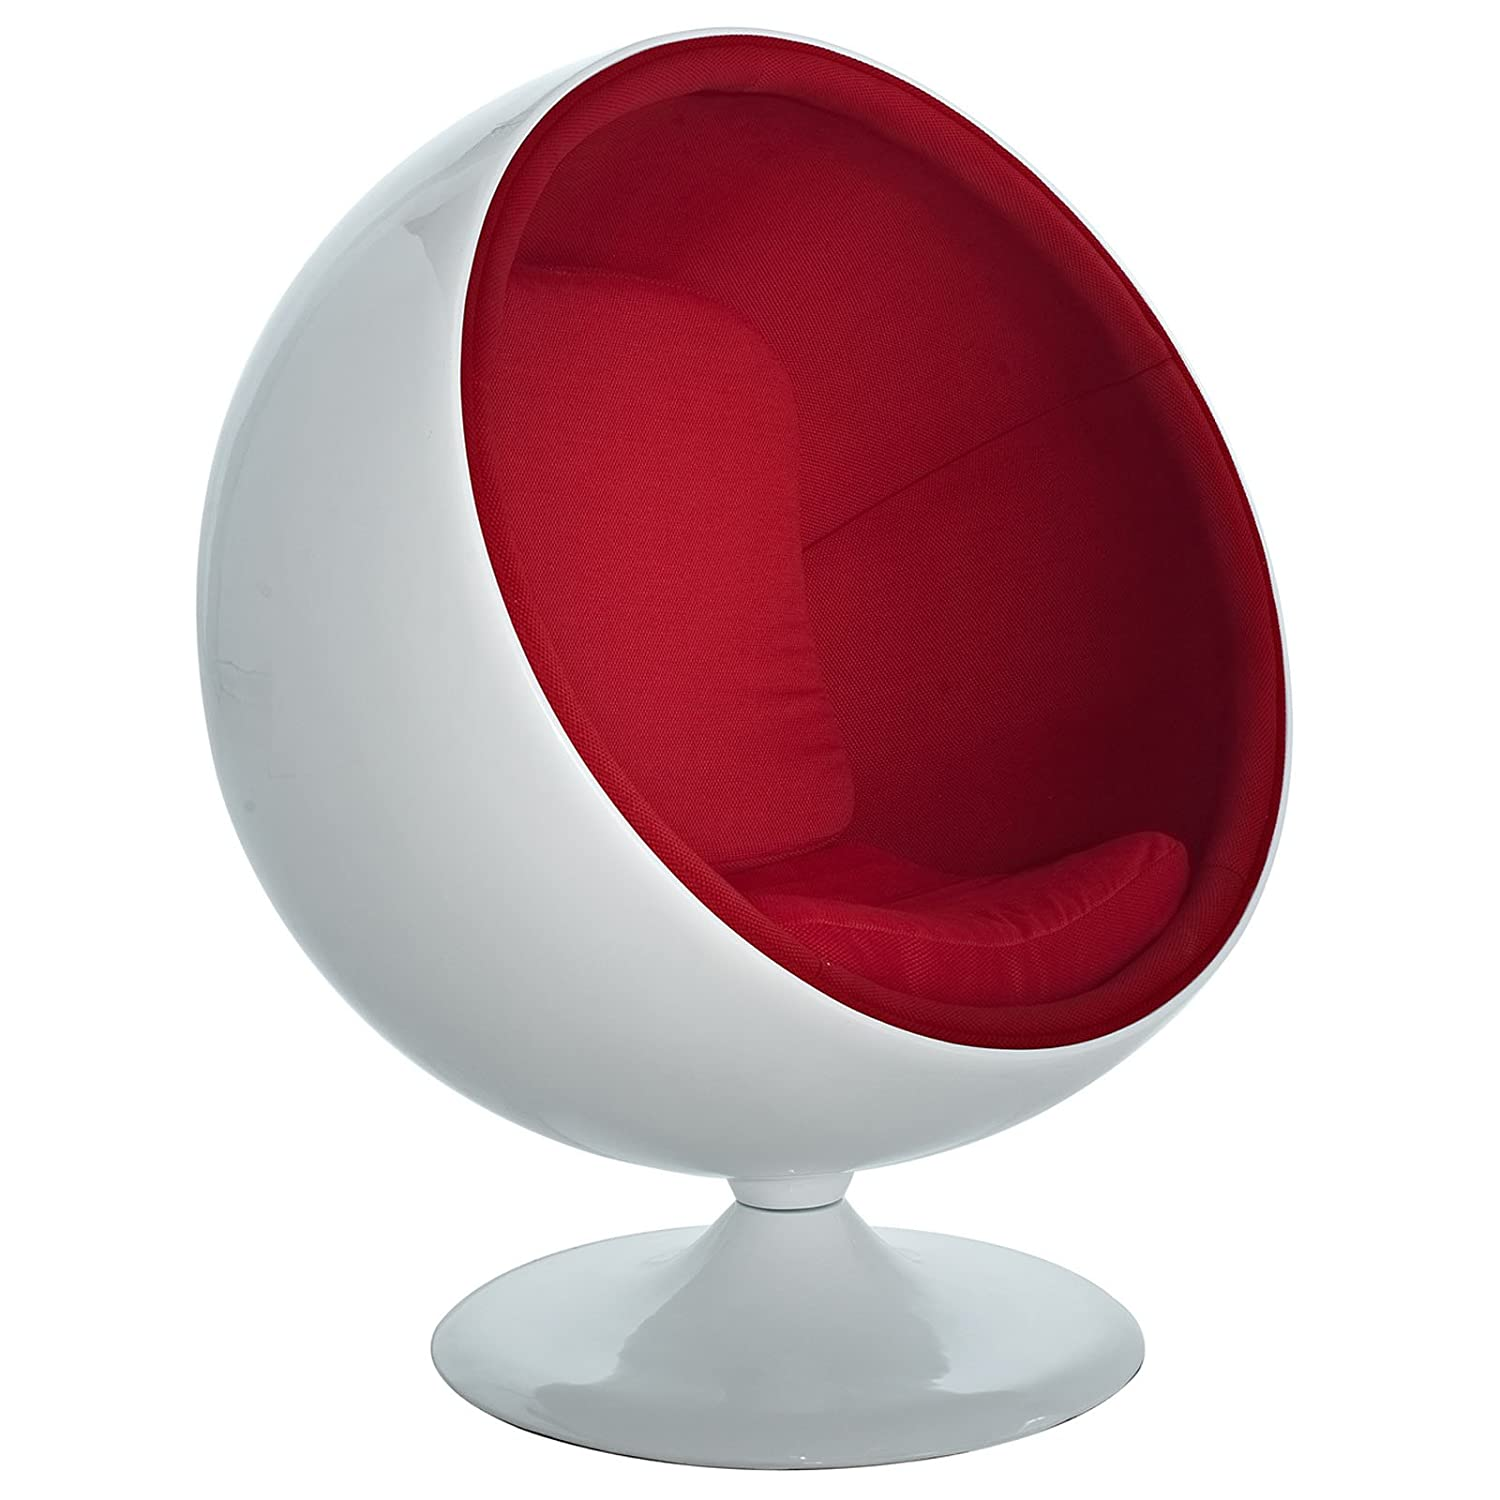 LexMod Eero Aarnio Style Ball Chair in Red Amazon Home & Kitchen